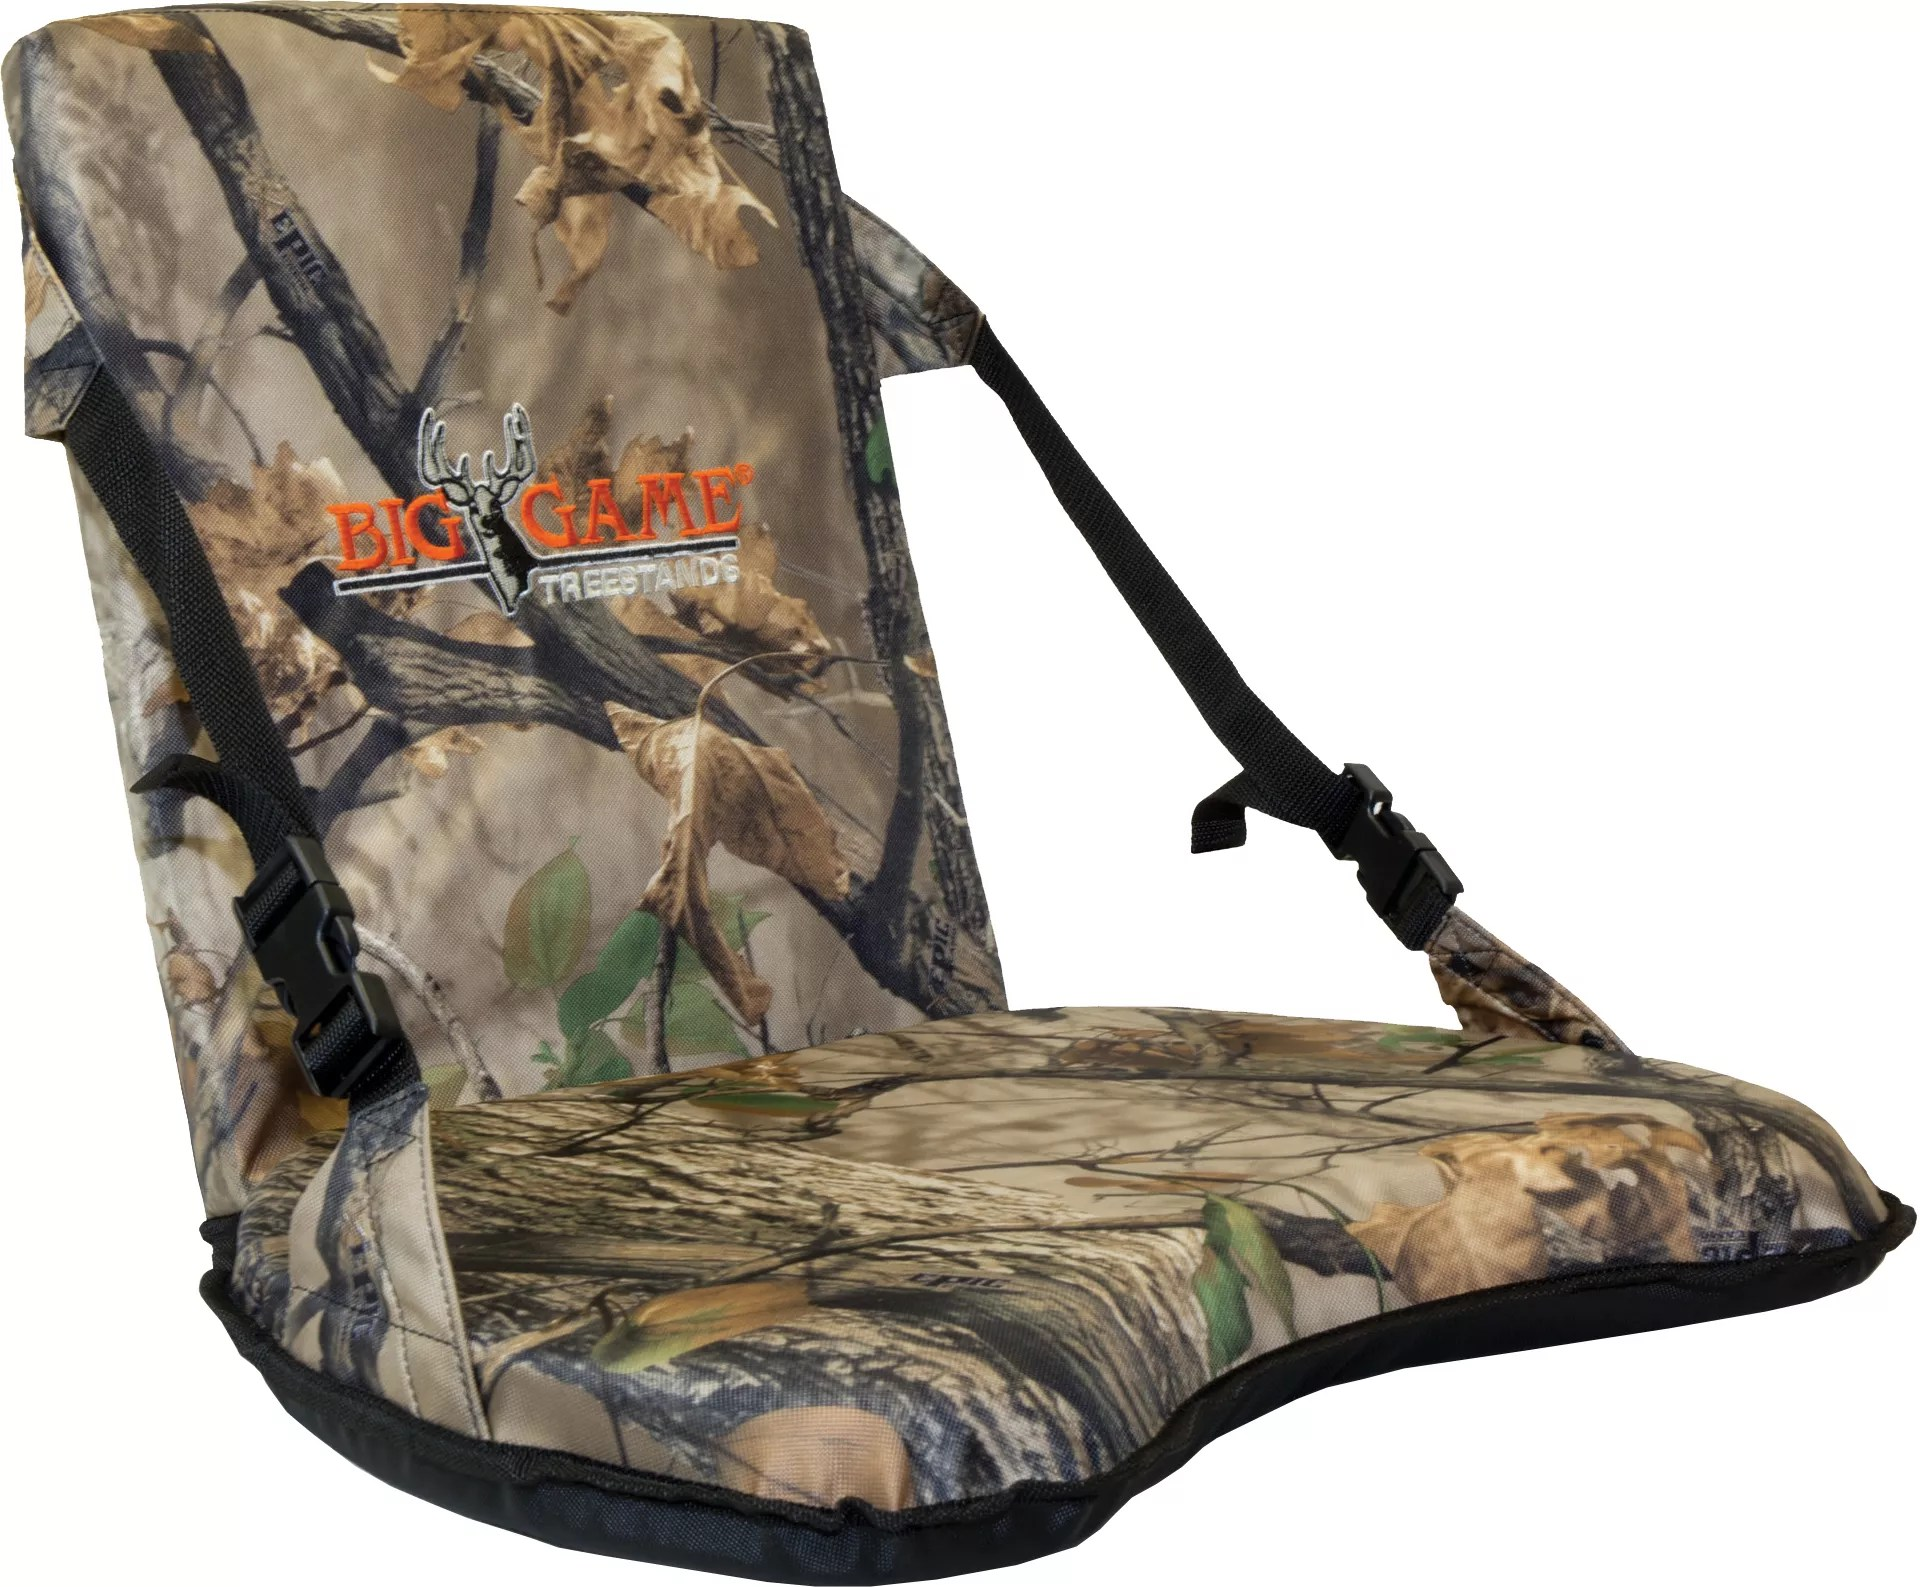 best lightweight hunting chair round banquet covers chairs stools for ground blinds field stream muddy complete seat